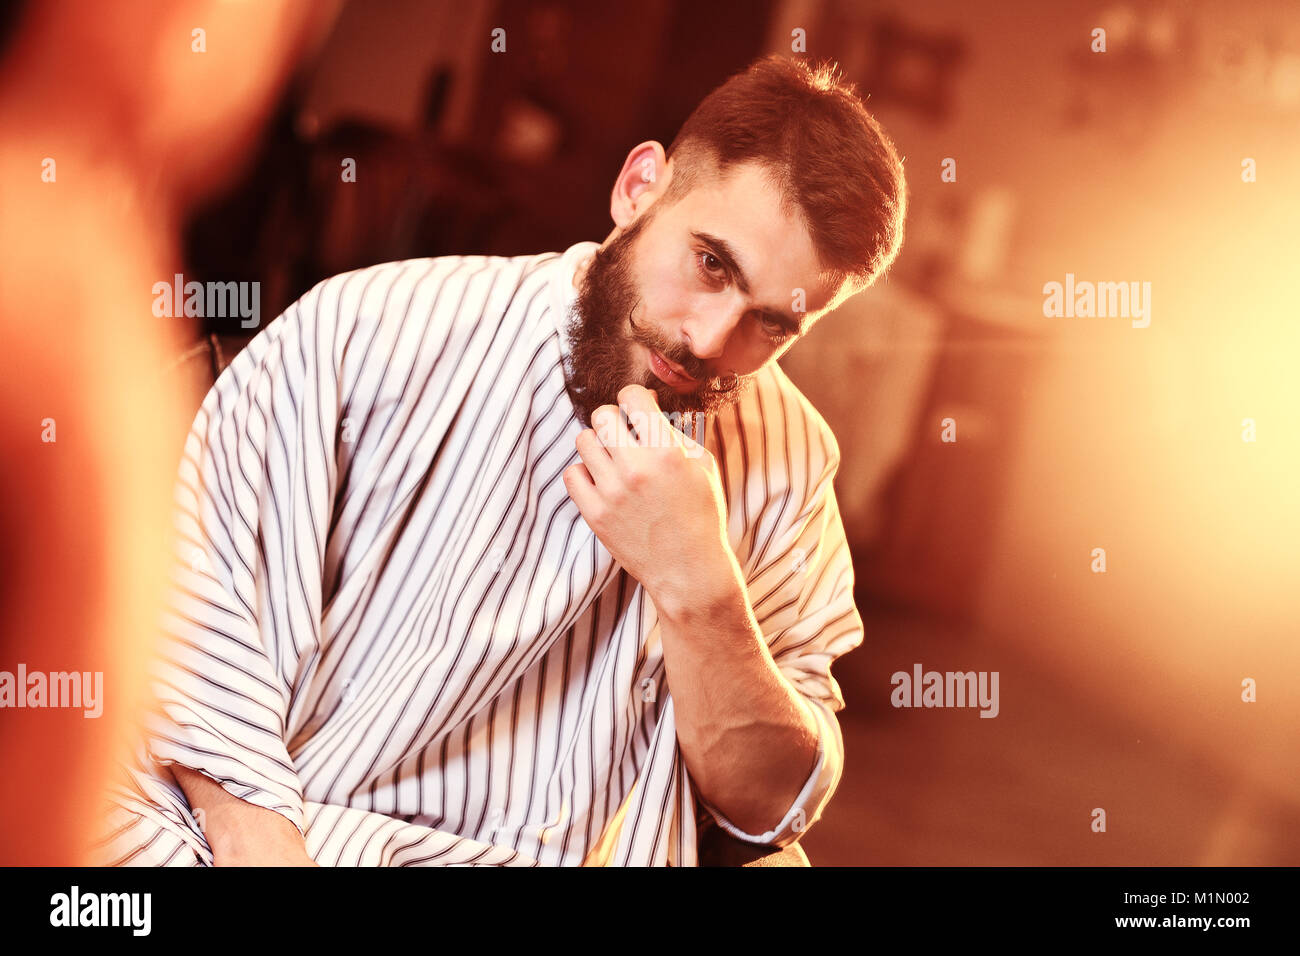 a handsome brave man with a beard in a barbershop - Stock Image